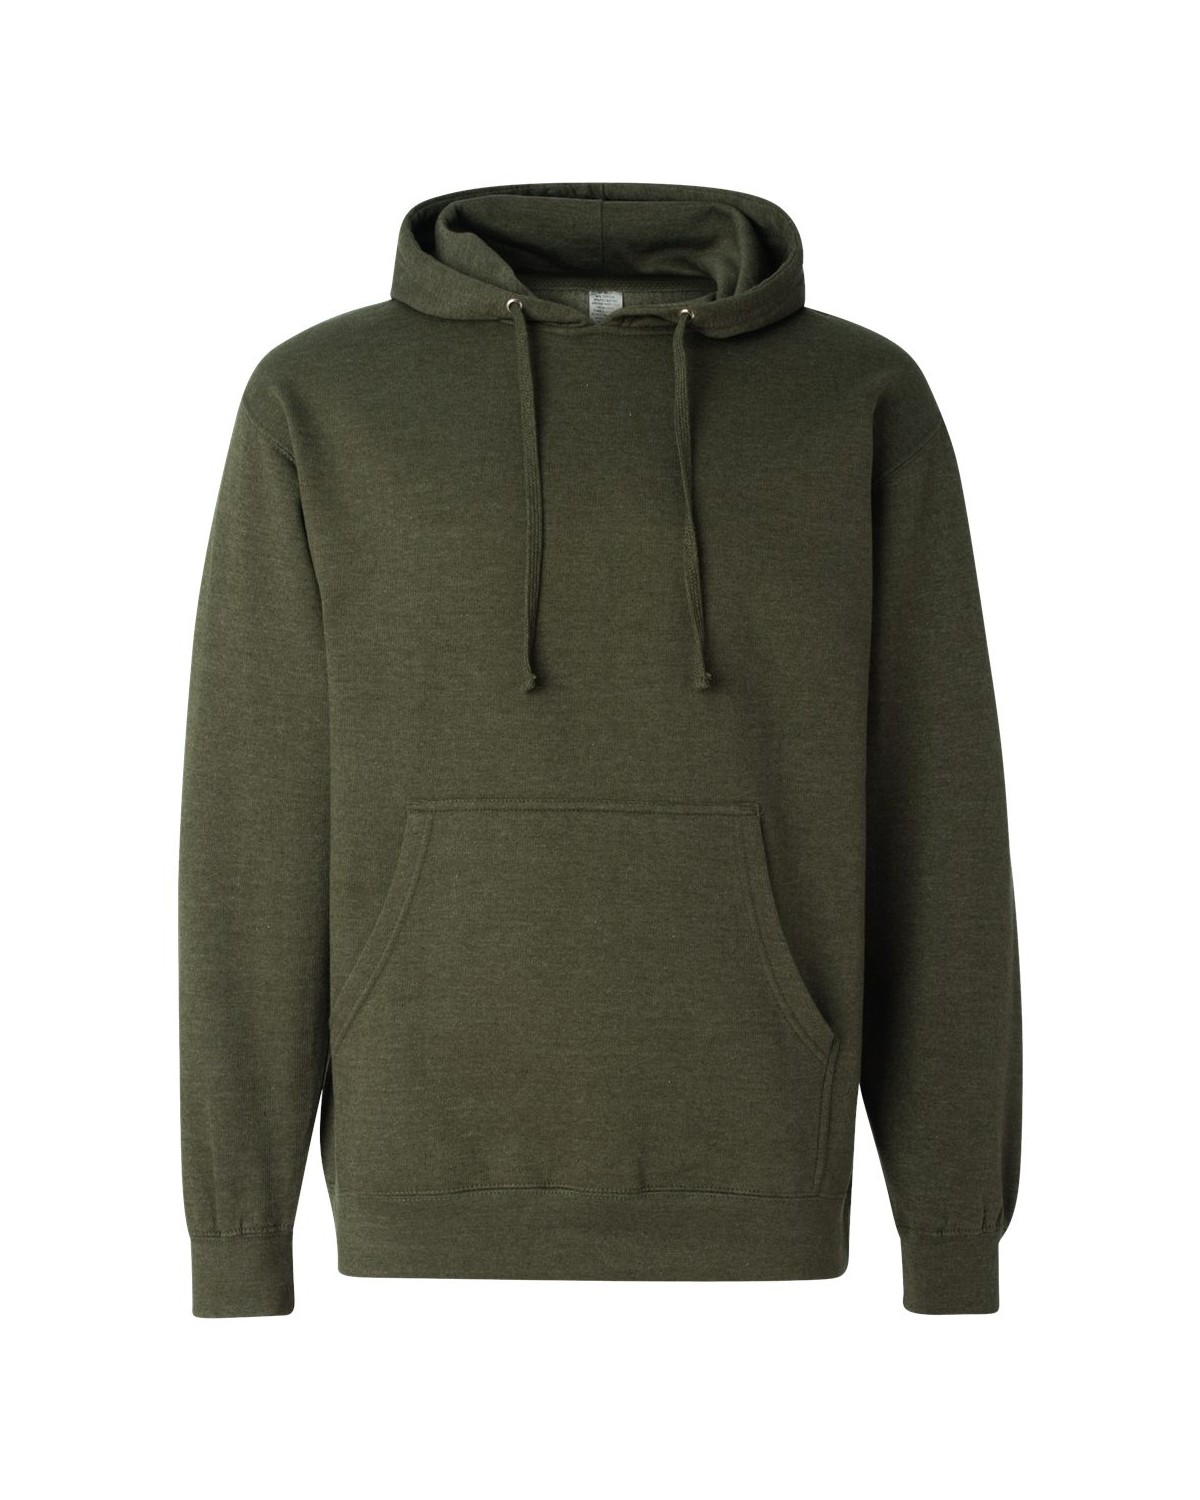 SS4500 Independent Trading Co. ARMY HEATHER